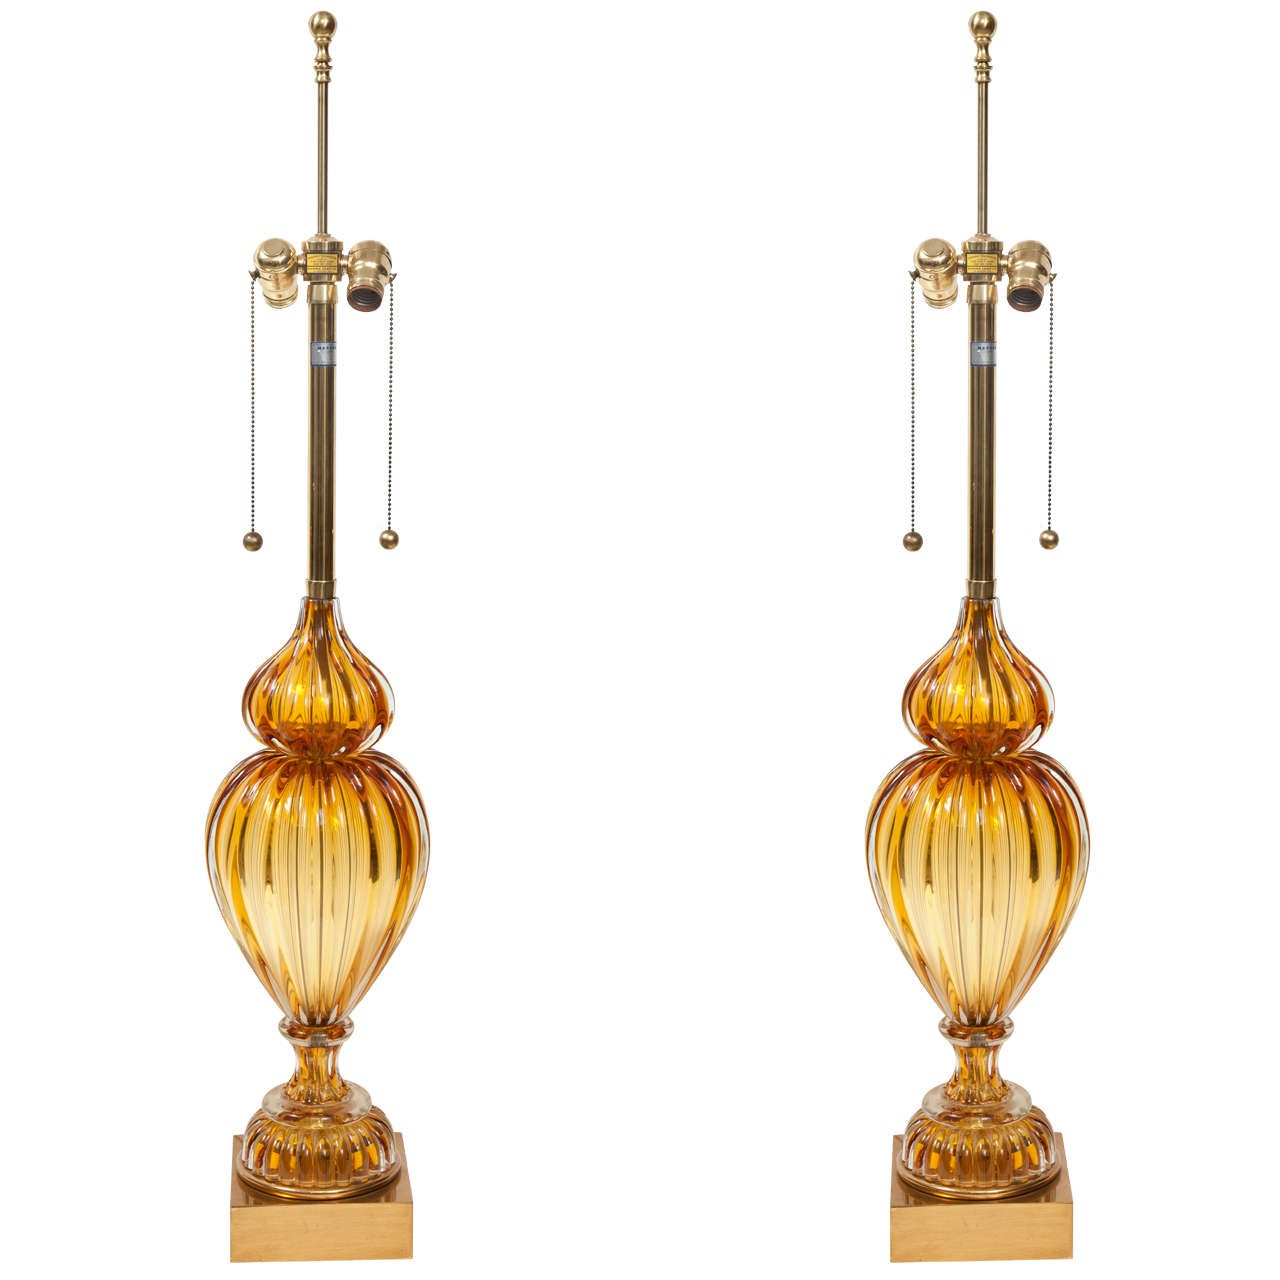 pair of murano glass lamps by marbro for sale at 1stdibs. Black Bedroom Furniture Sets. Home Design Ideas